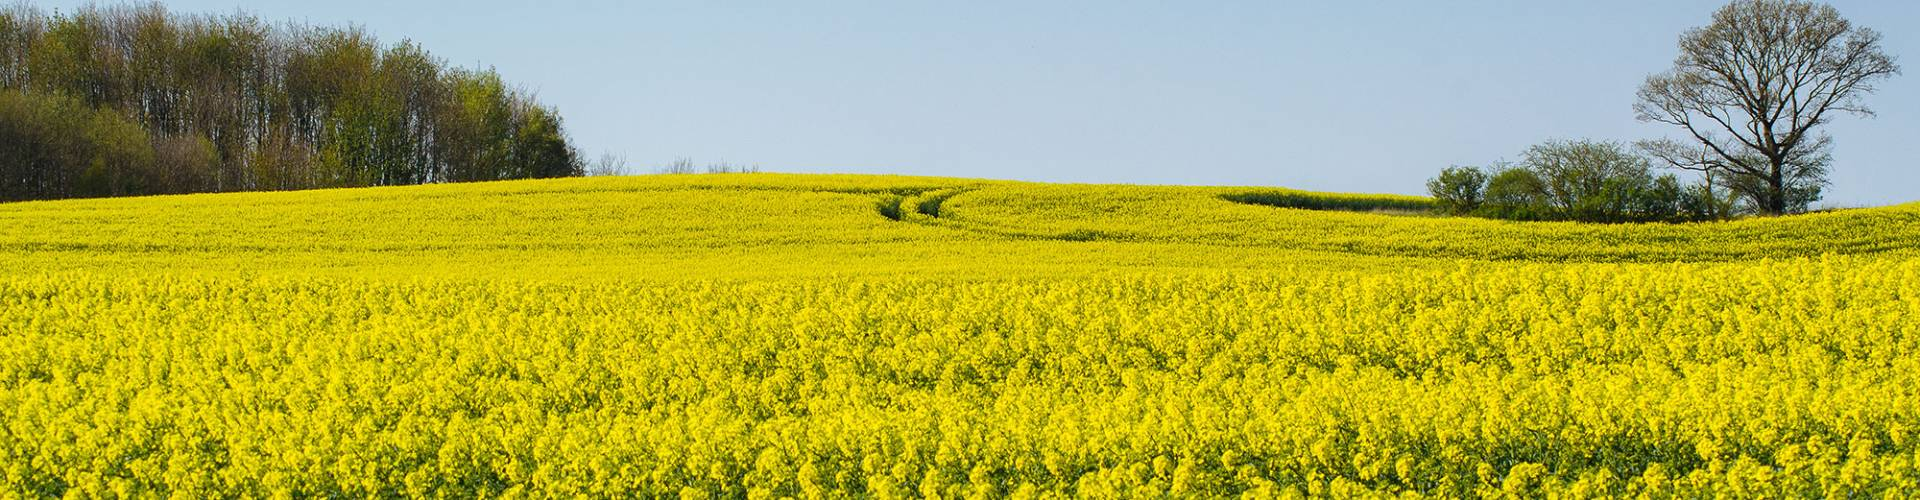 Winter Oilseed Rape